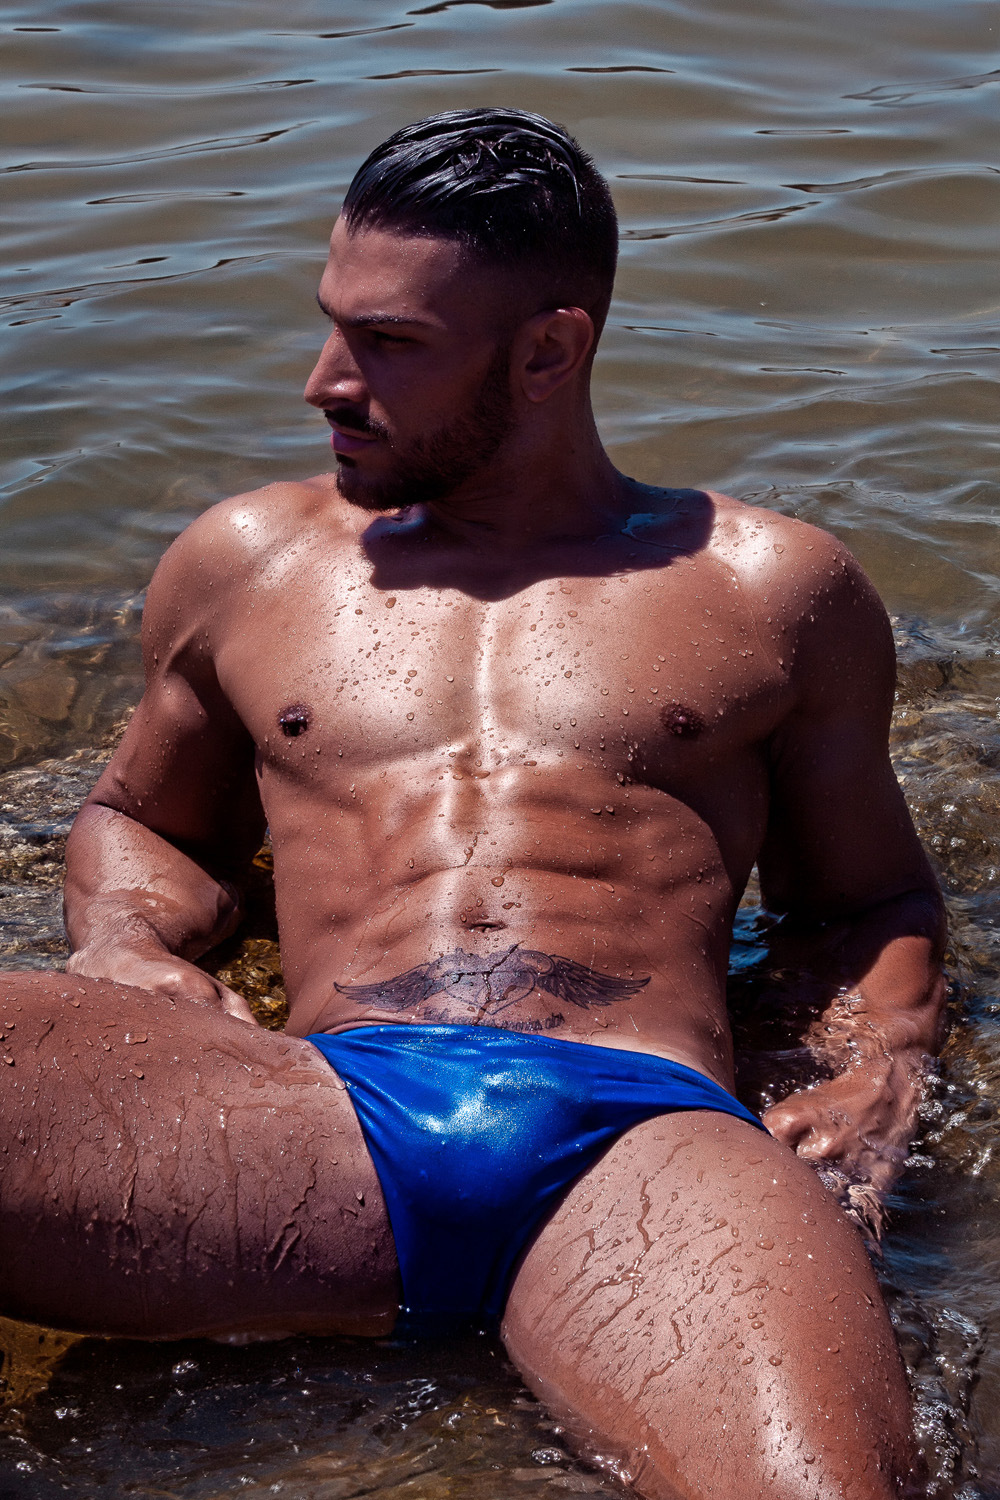 15-sexy-reasons-to-not-miss-summer-2016-cacc81ndido-arteaga-by-joan-crisol-8